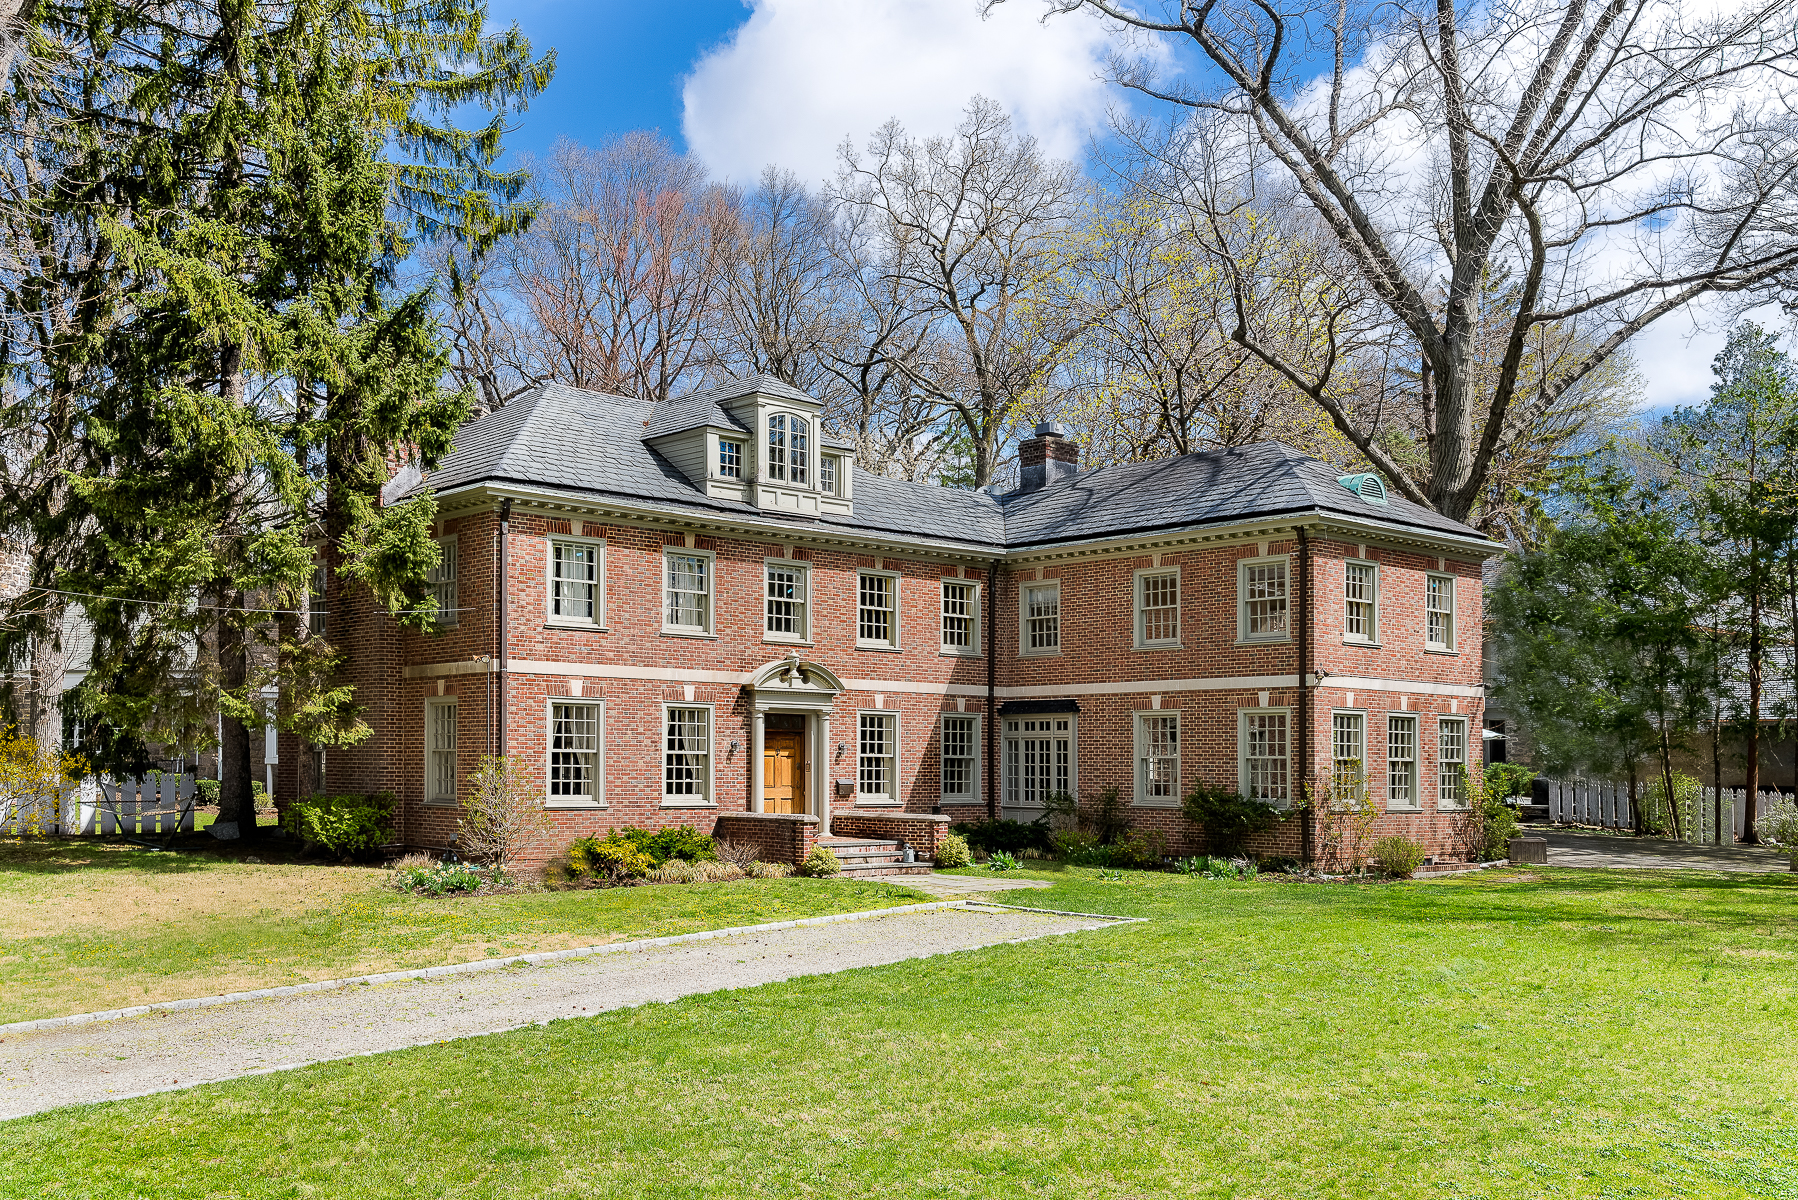 Casa Unifamiliar por un Venta en Magnificent Georgian in Fieldston 4524 Greystone Avenue Riverdale, Nueva York, 10471 Estados Unidos